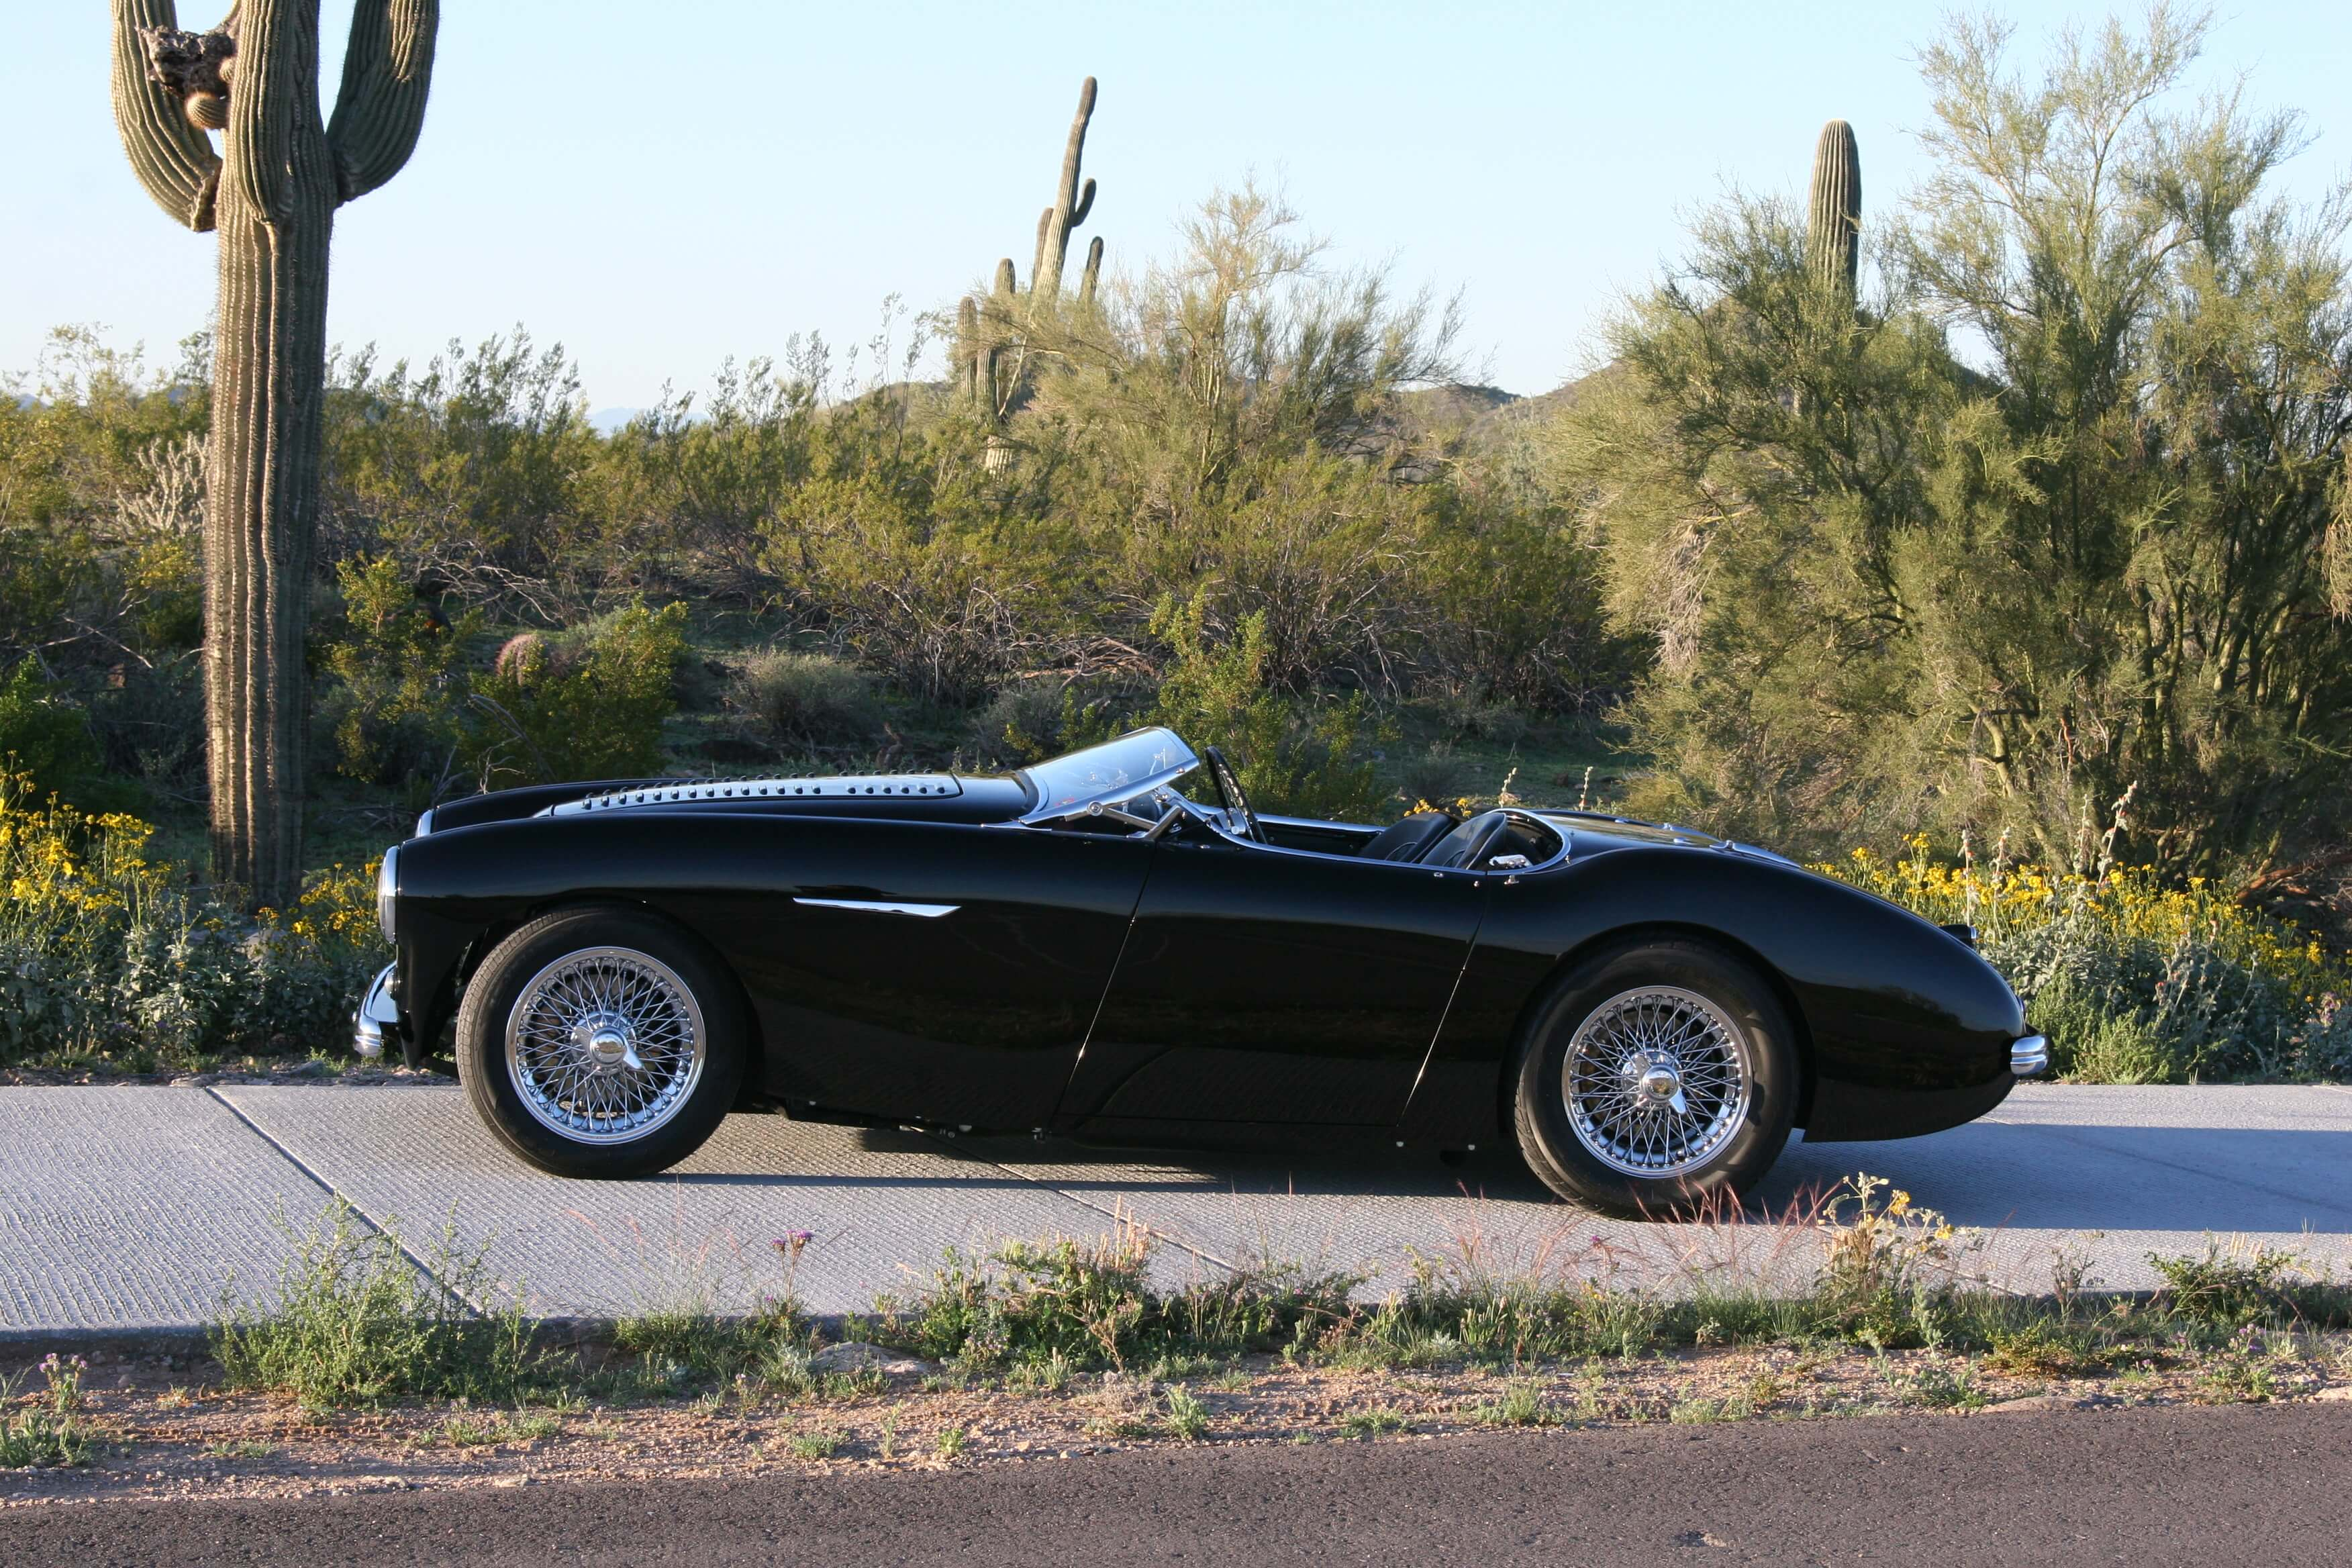 Ed's 1955 Austin Healey 100 - Hot Rods by Dean